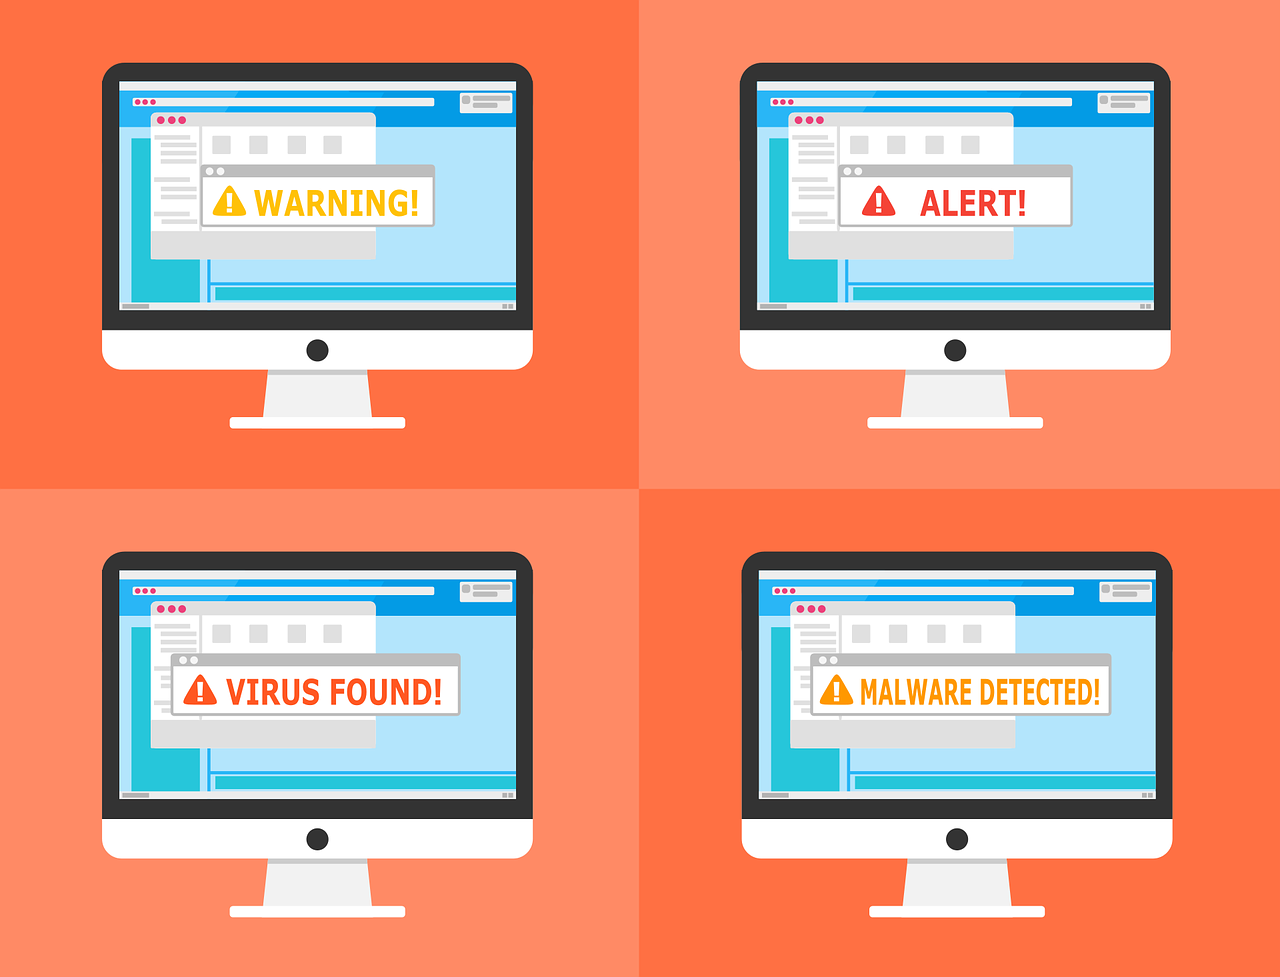 https://news.hitb.org/content/protecting-your-networks-ransomware-us-government-recommendations